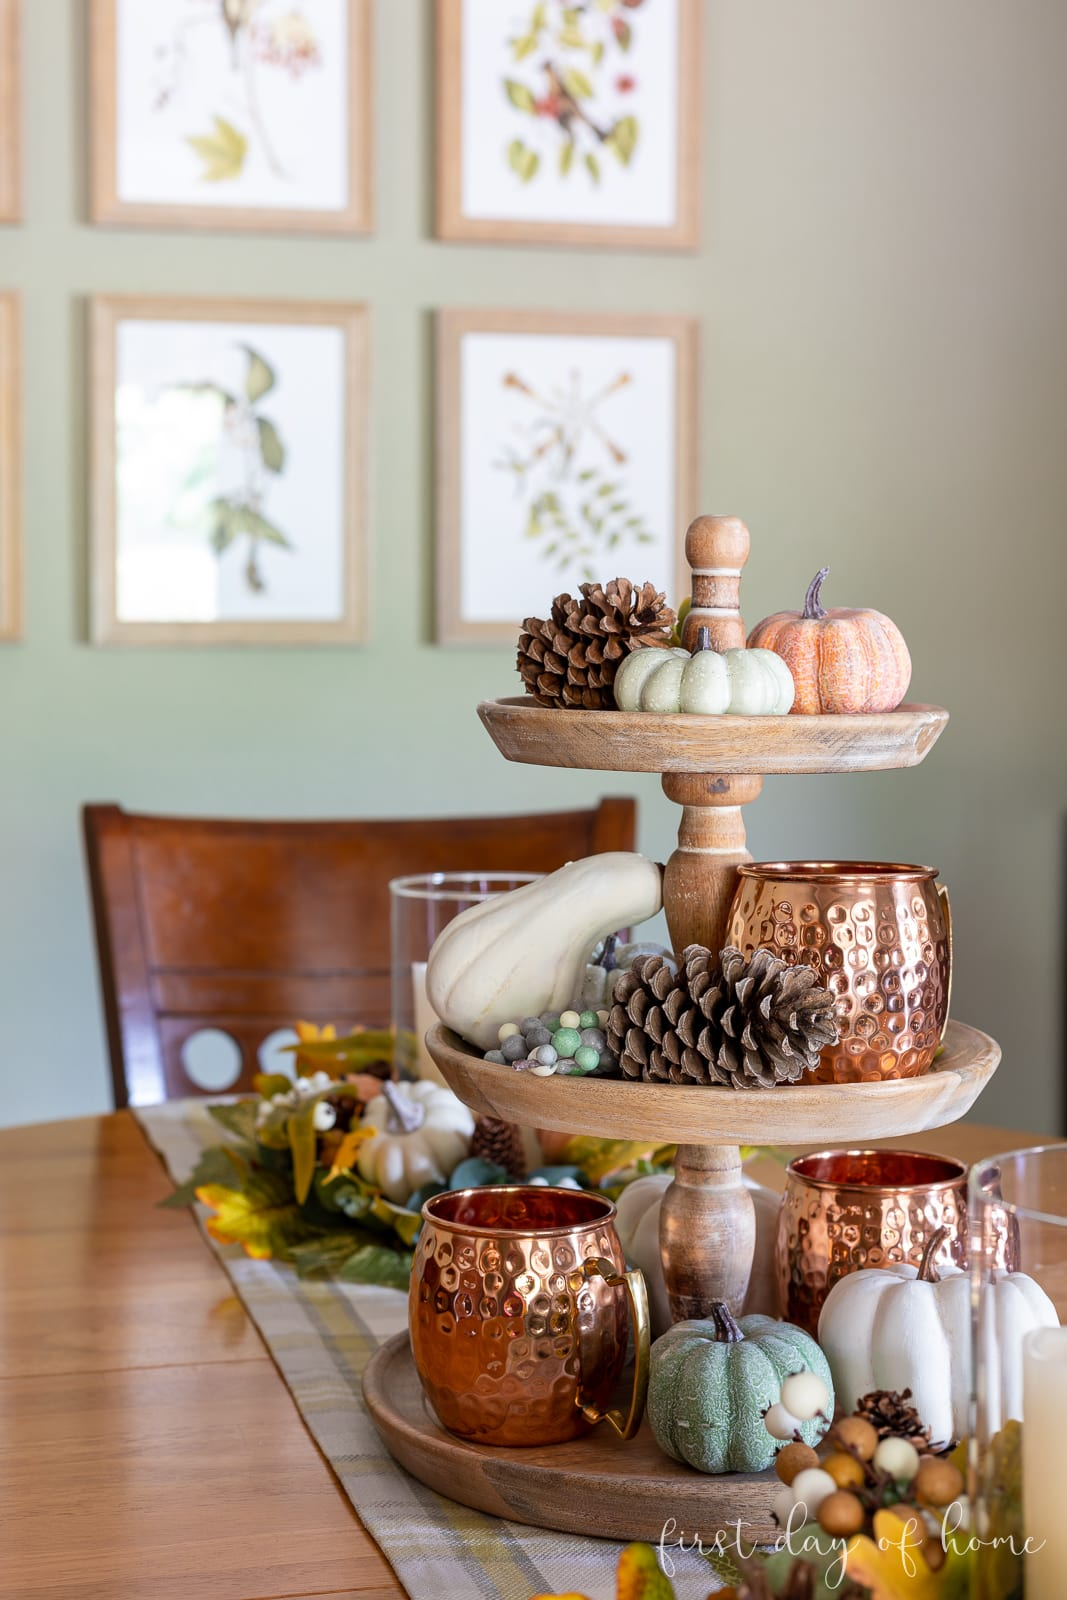 Fall breakfast room with tiered tray centerpiece and copper accents mixed with faux pumpkins